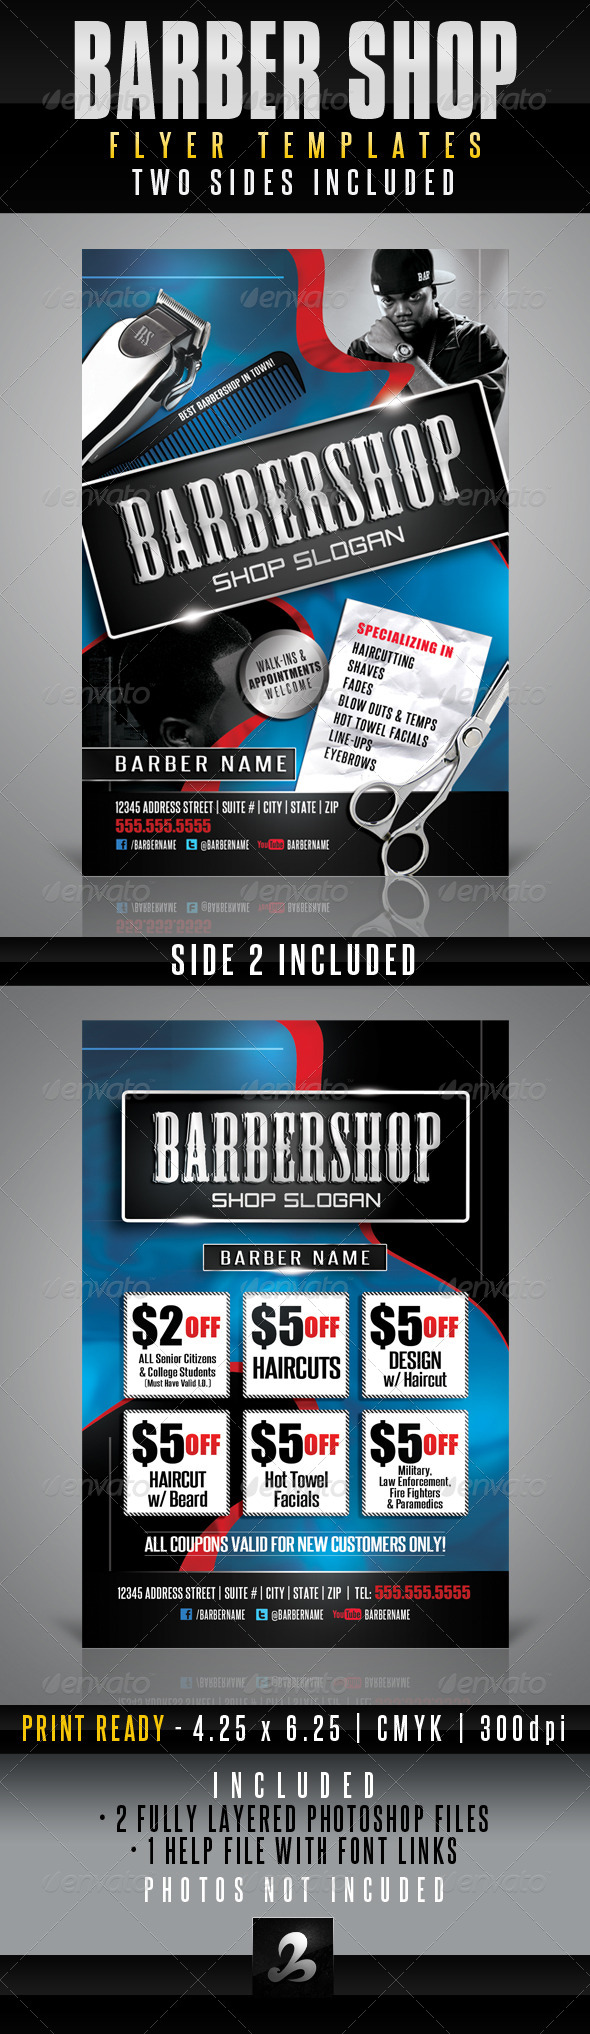 Barbershop Flyer Templates - Corporate Flyers